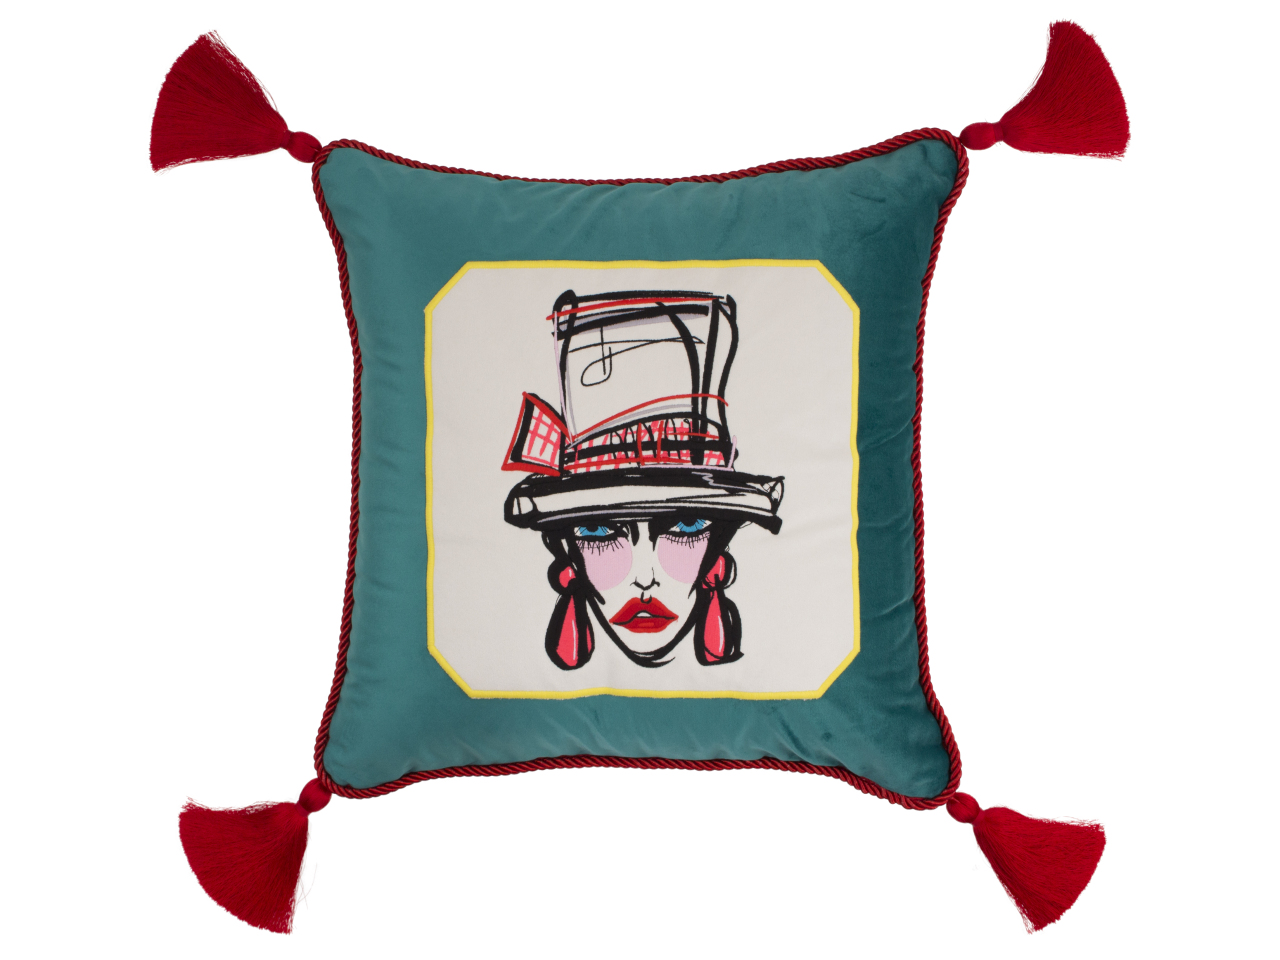 Cushion printed with character named Madame Victoire, created by Yi Privee (Yido)